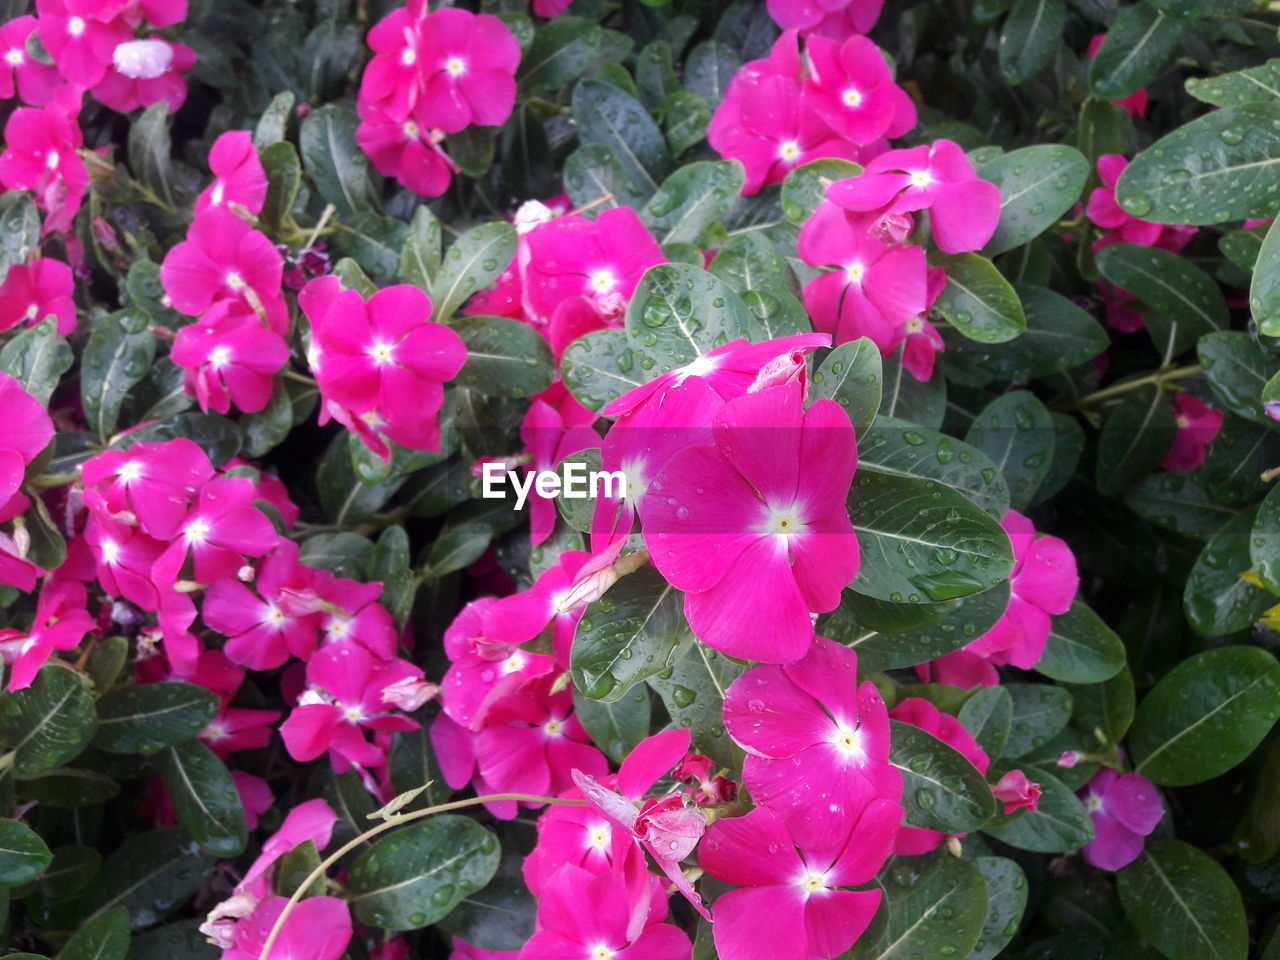 flower, growth, petal, fragility, beauty in nature, freshness, flower head, plant, nature, blooming, day, high angle view, outdoors, leaf, pink color, no people, green color, periwinkle, petunia, close-up